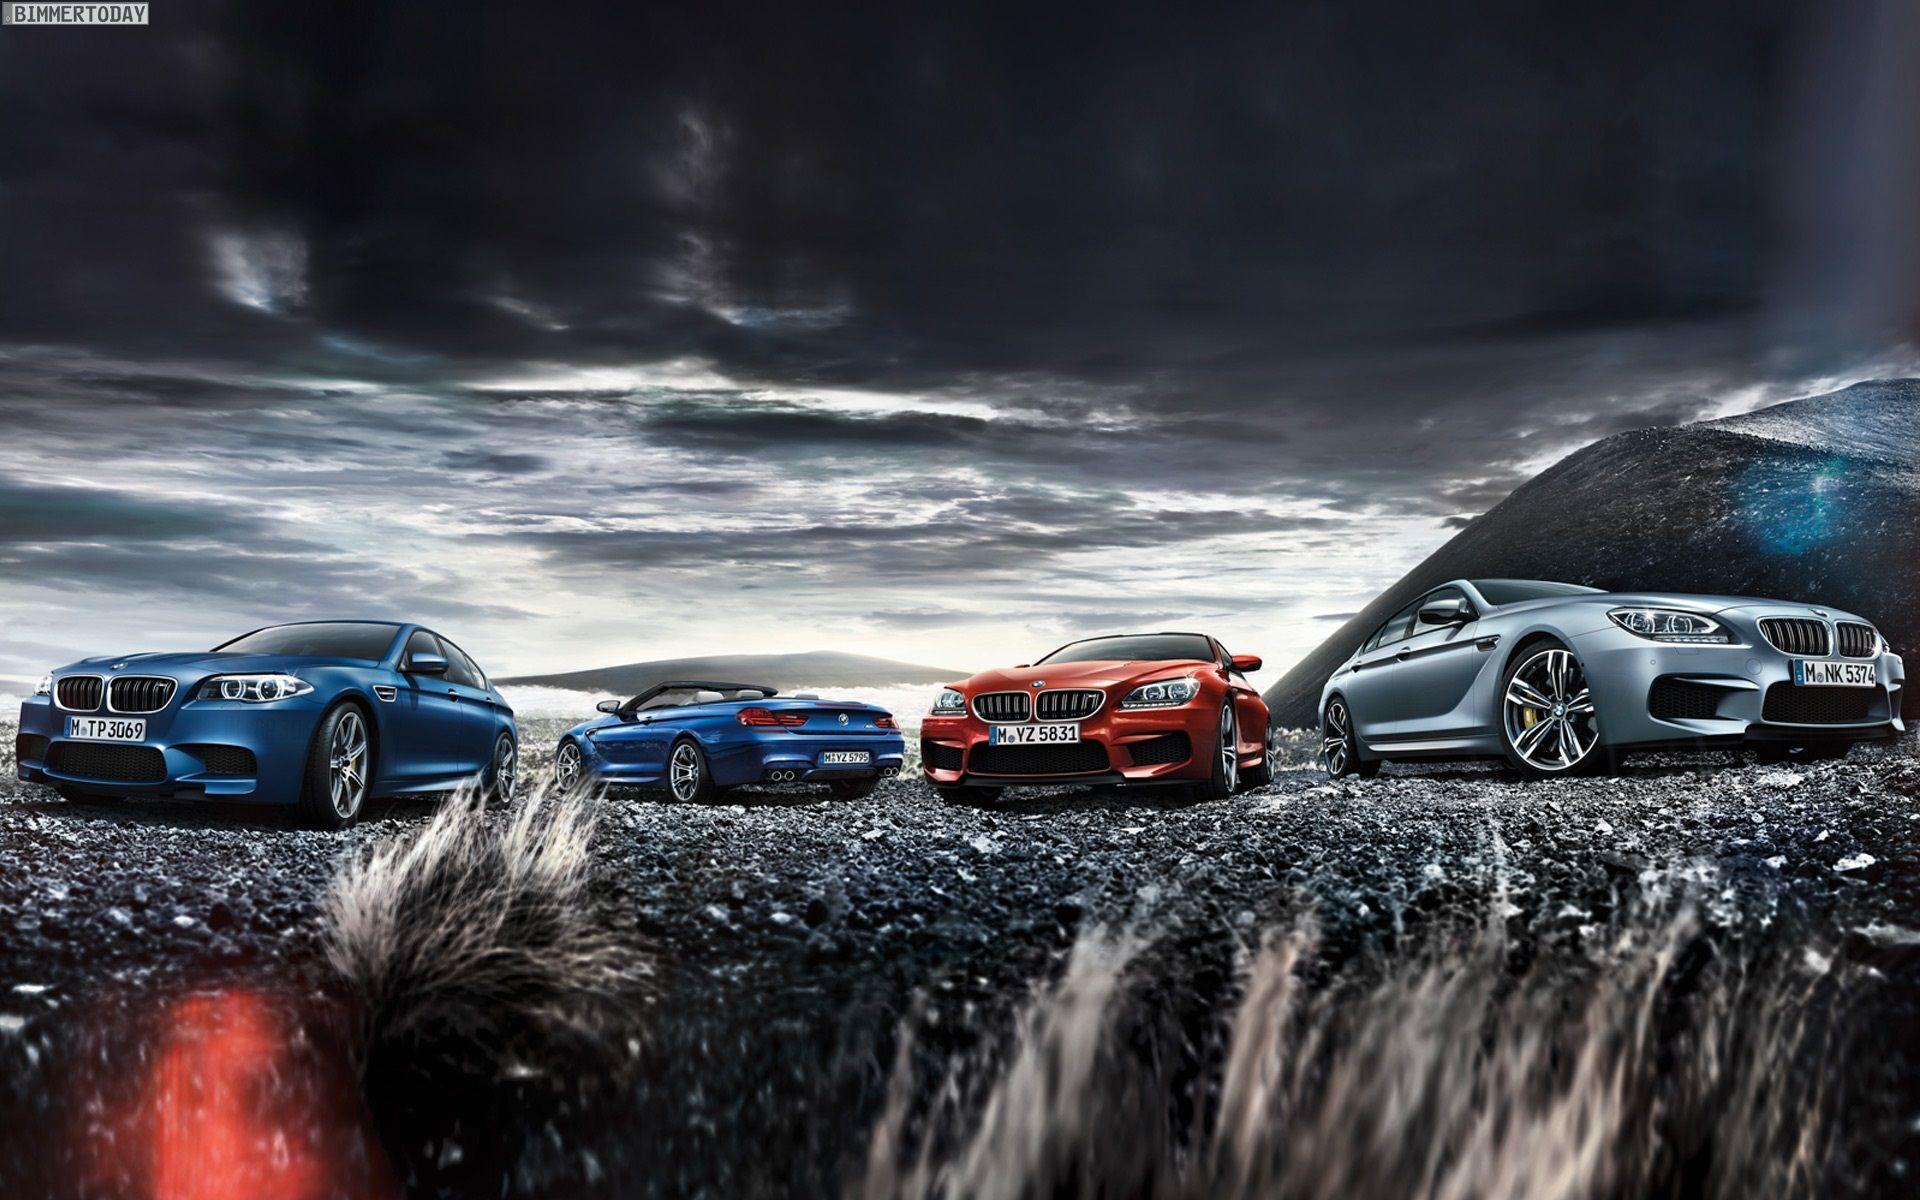 BMW M sold 31,282 cars in 2013